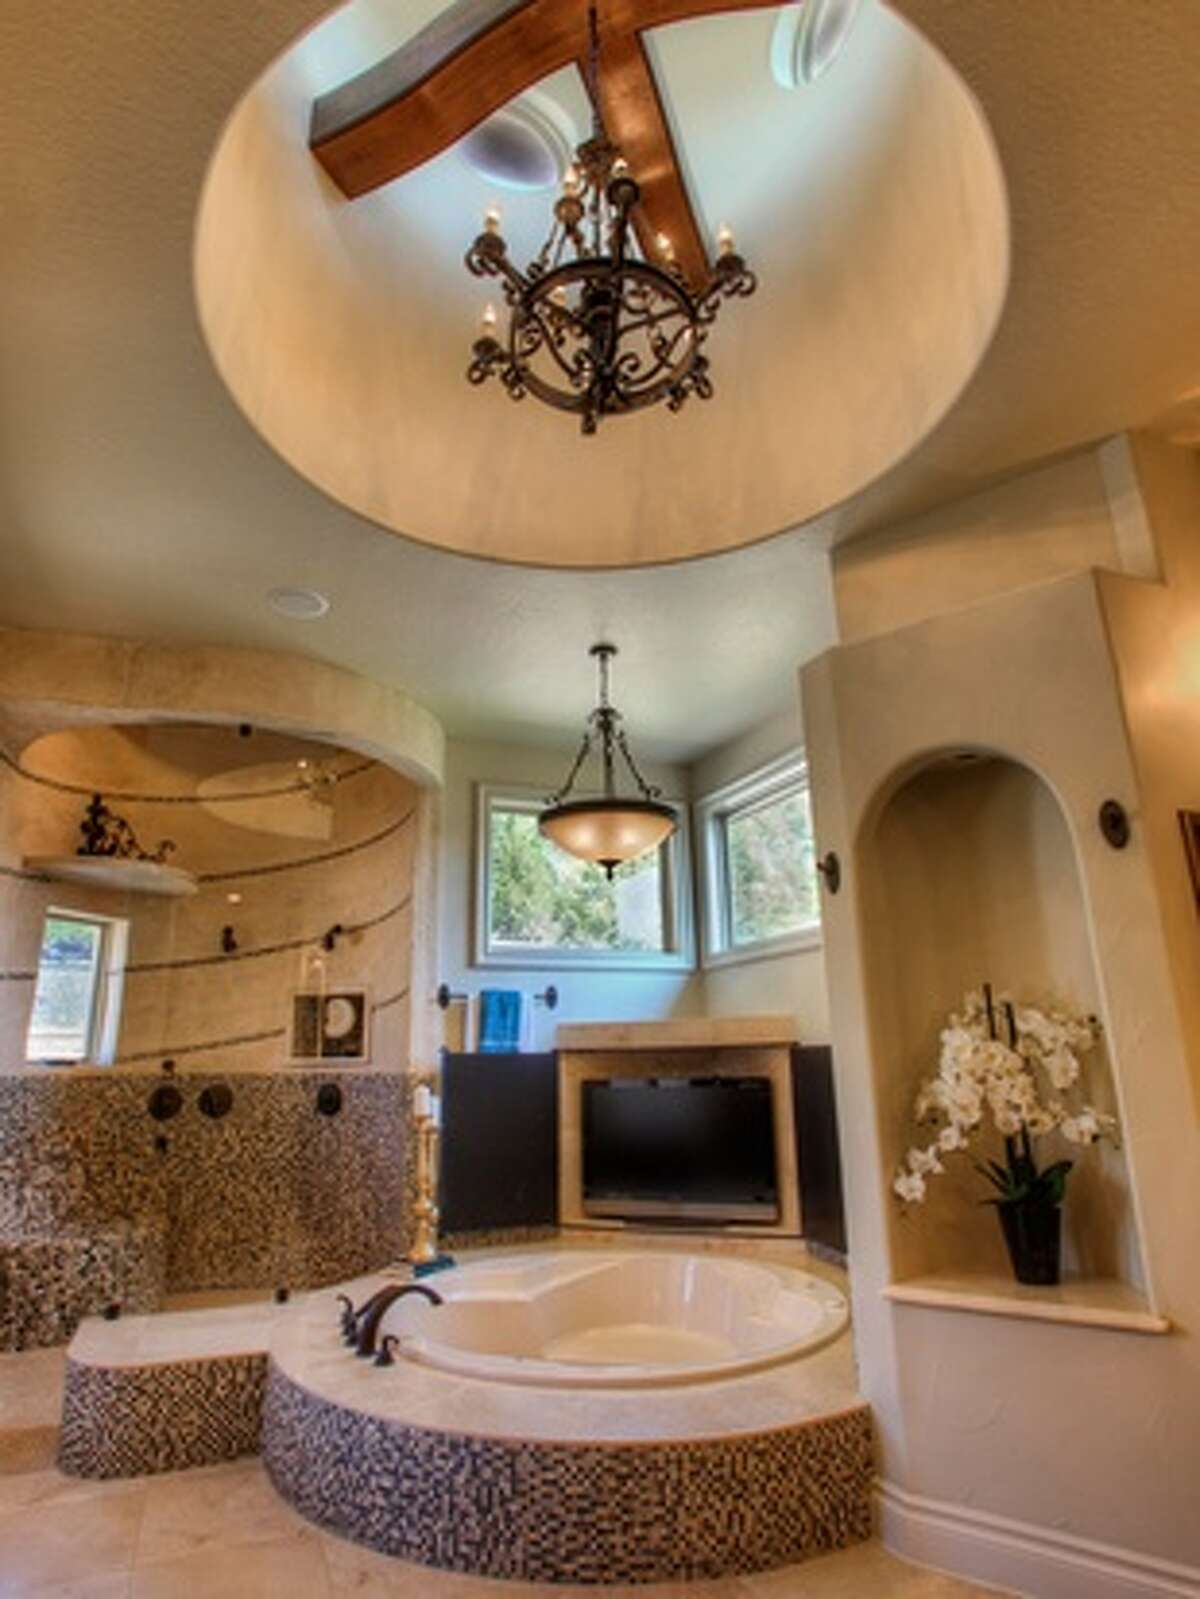 1. 11411 Cat Springs, Boerne, Texas 78006 Price: $2.6 million Bedrooms: 6 Bathrooms: 6 full, 1 partial Home size: 9,000 square feet Lot size: 1.91 acres Features: Master retreat with